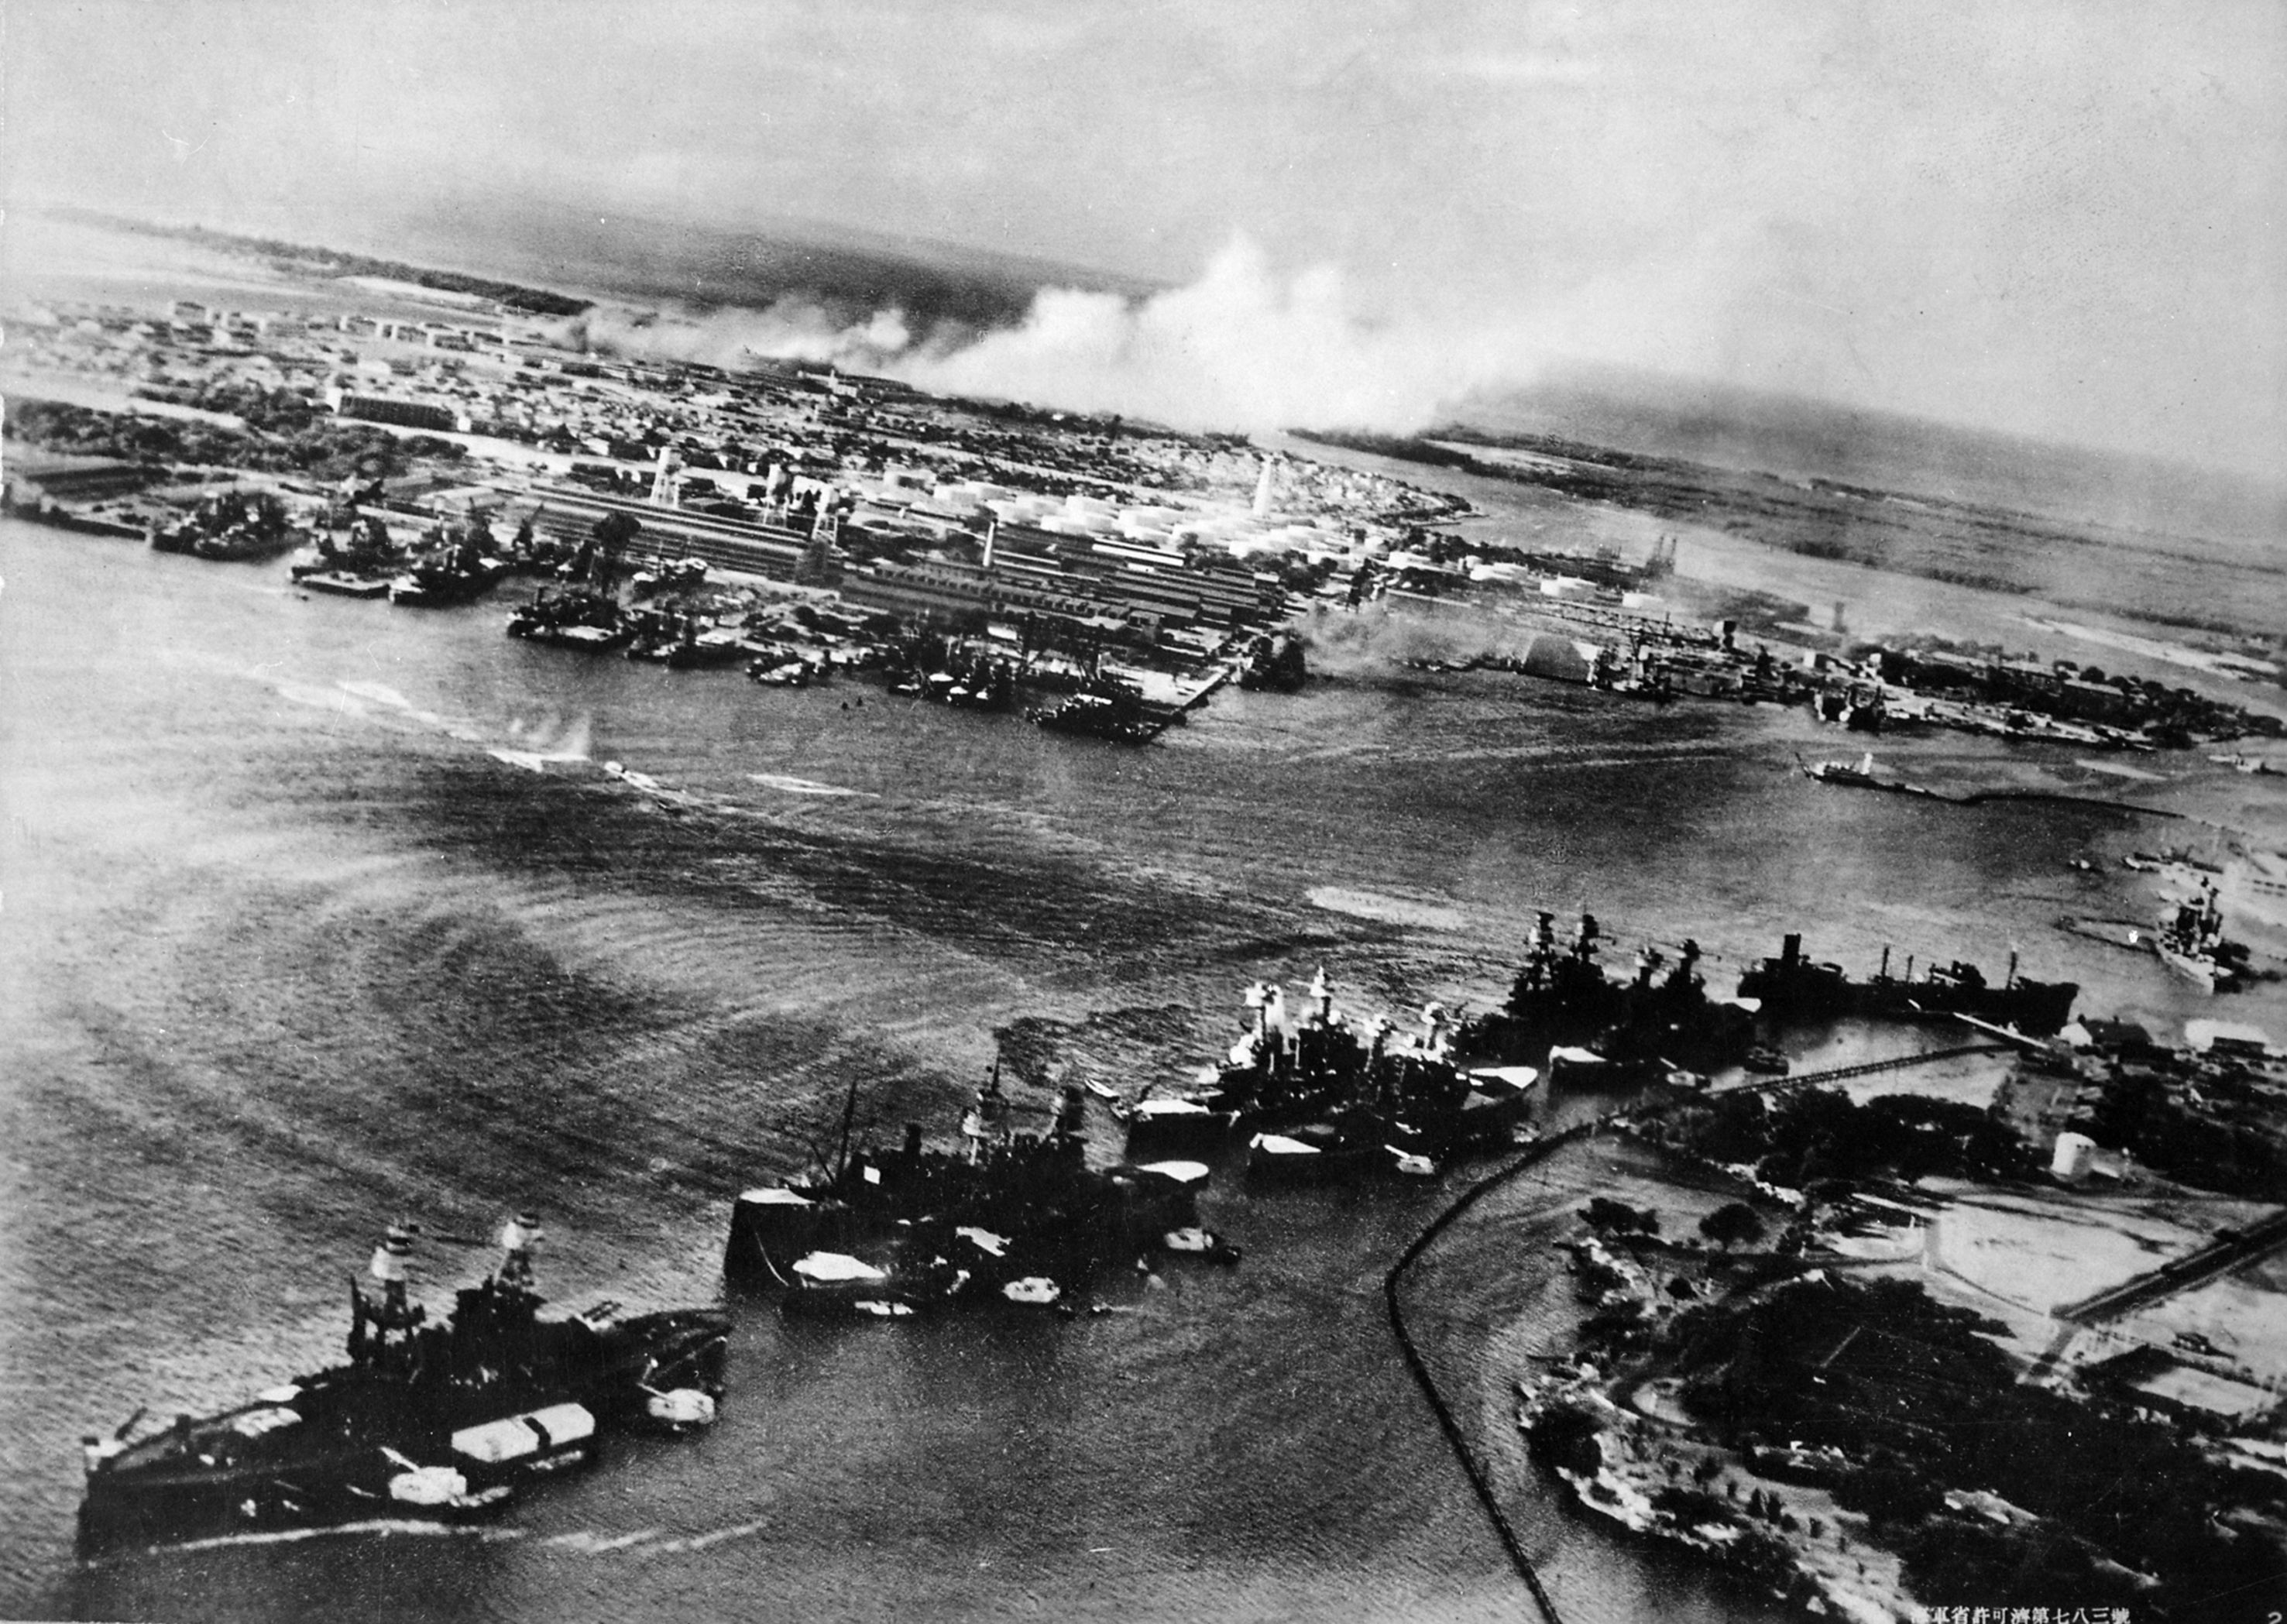 Attack on 'Battleship Row' of Pearl Harbor, seen from a Japanese aircraft, 7 Dec 1941 (US National Archives)